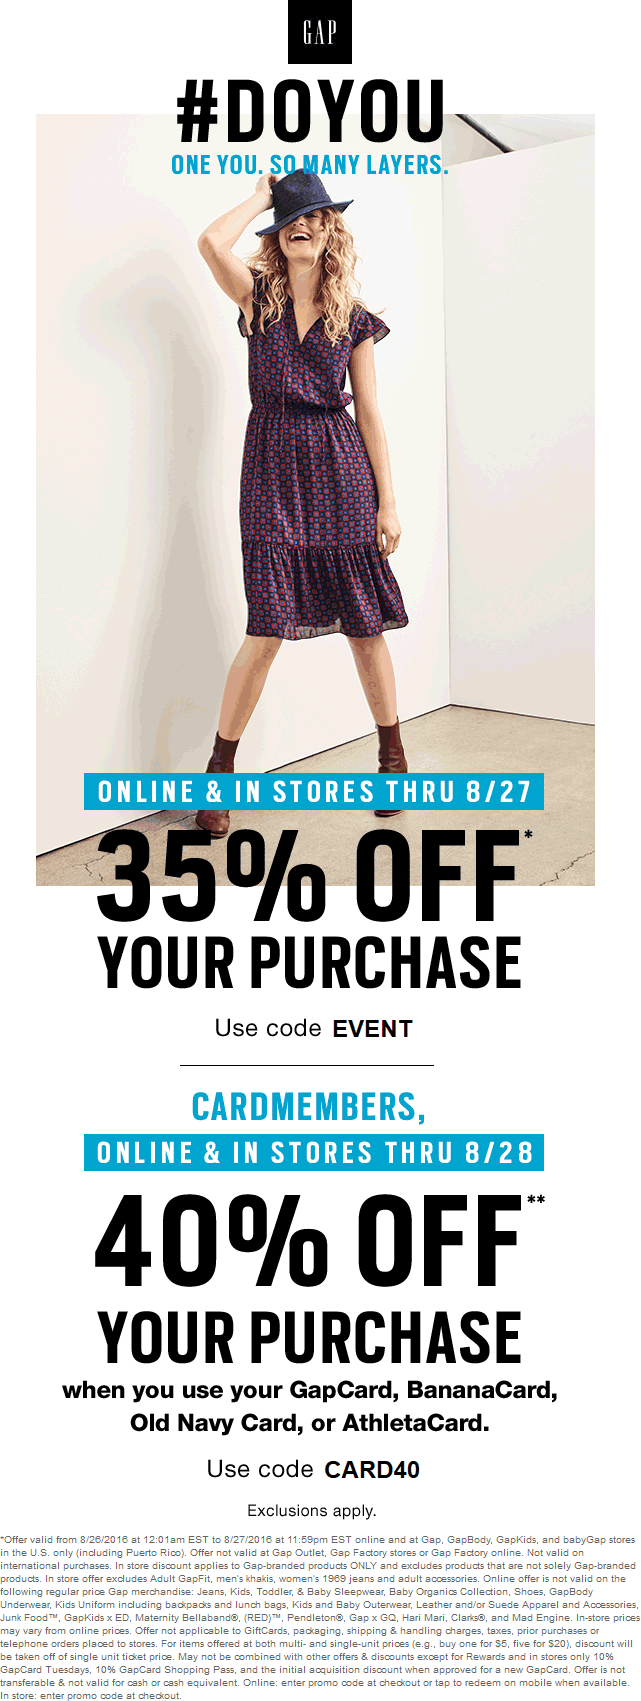 Gap Coupon January 2017 35% off today at Gap, or online via promo code EVENT